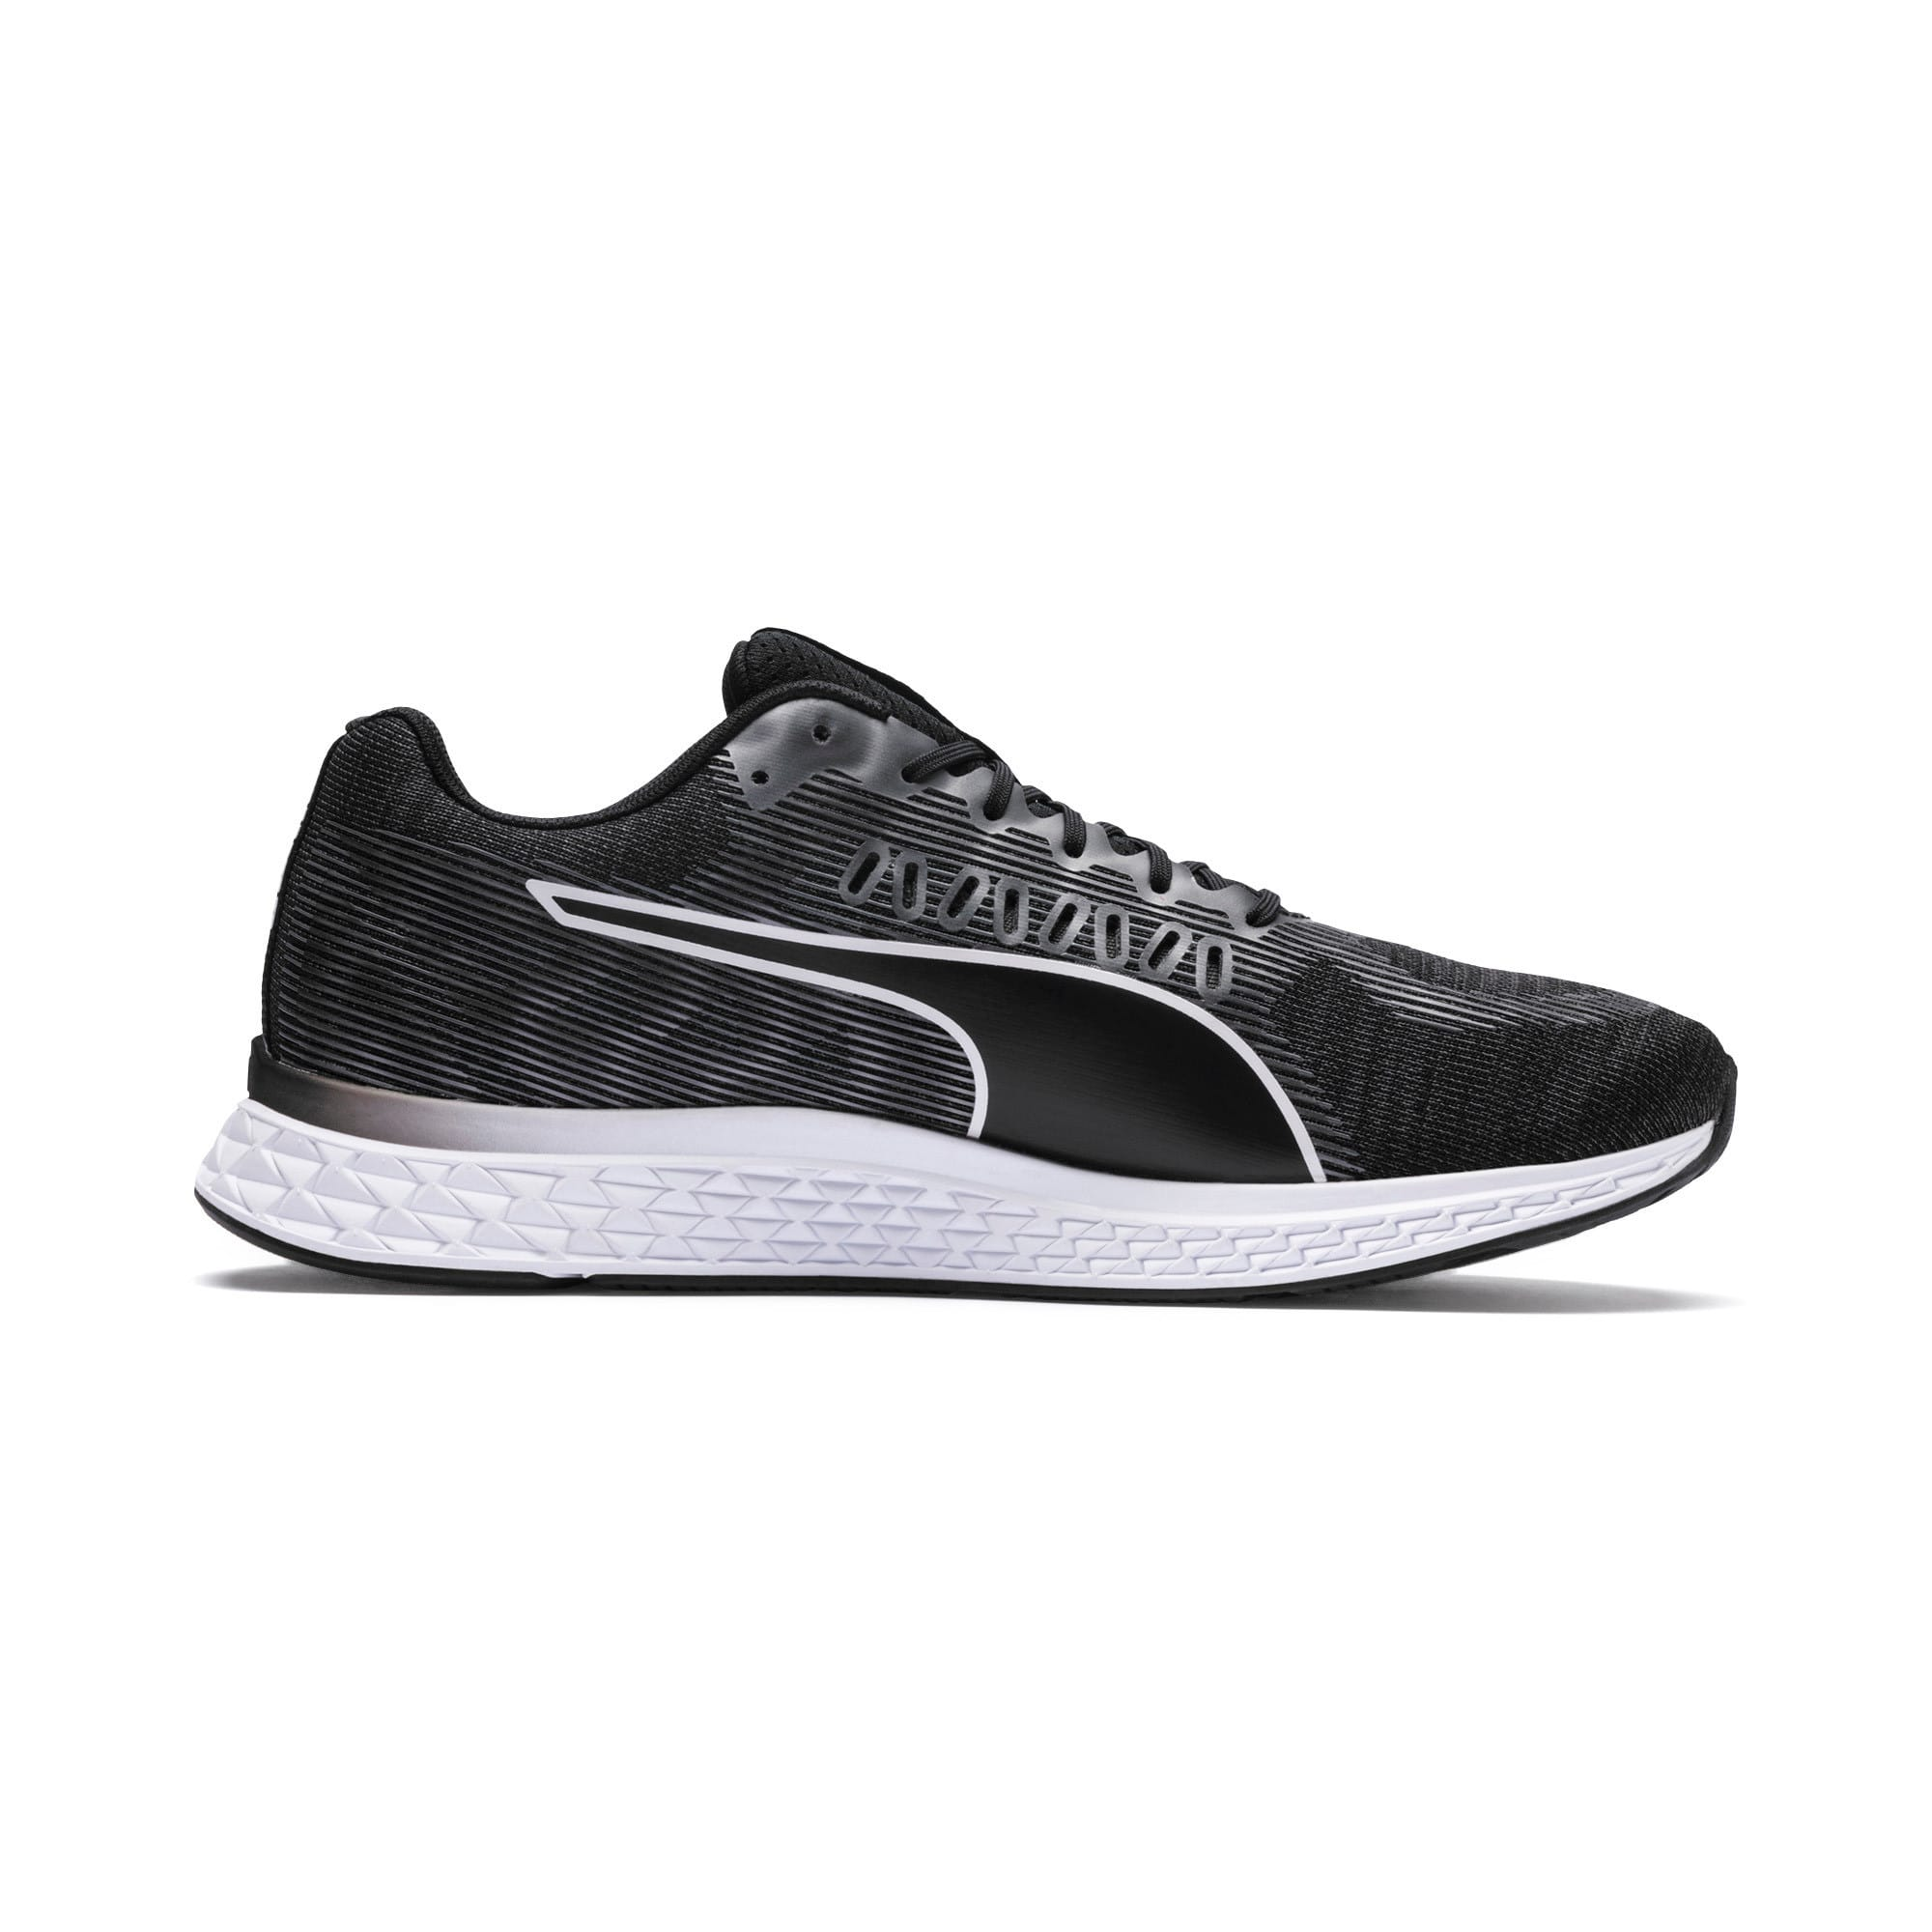 Thumbnail 5 of SPEED SUTAMINA Running Shoes, Puma Black-Puma White, medium